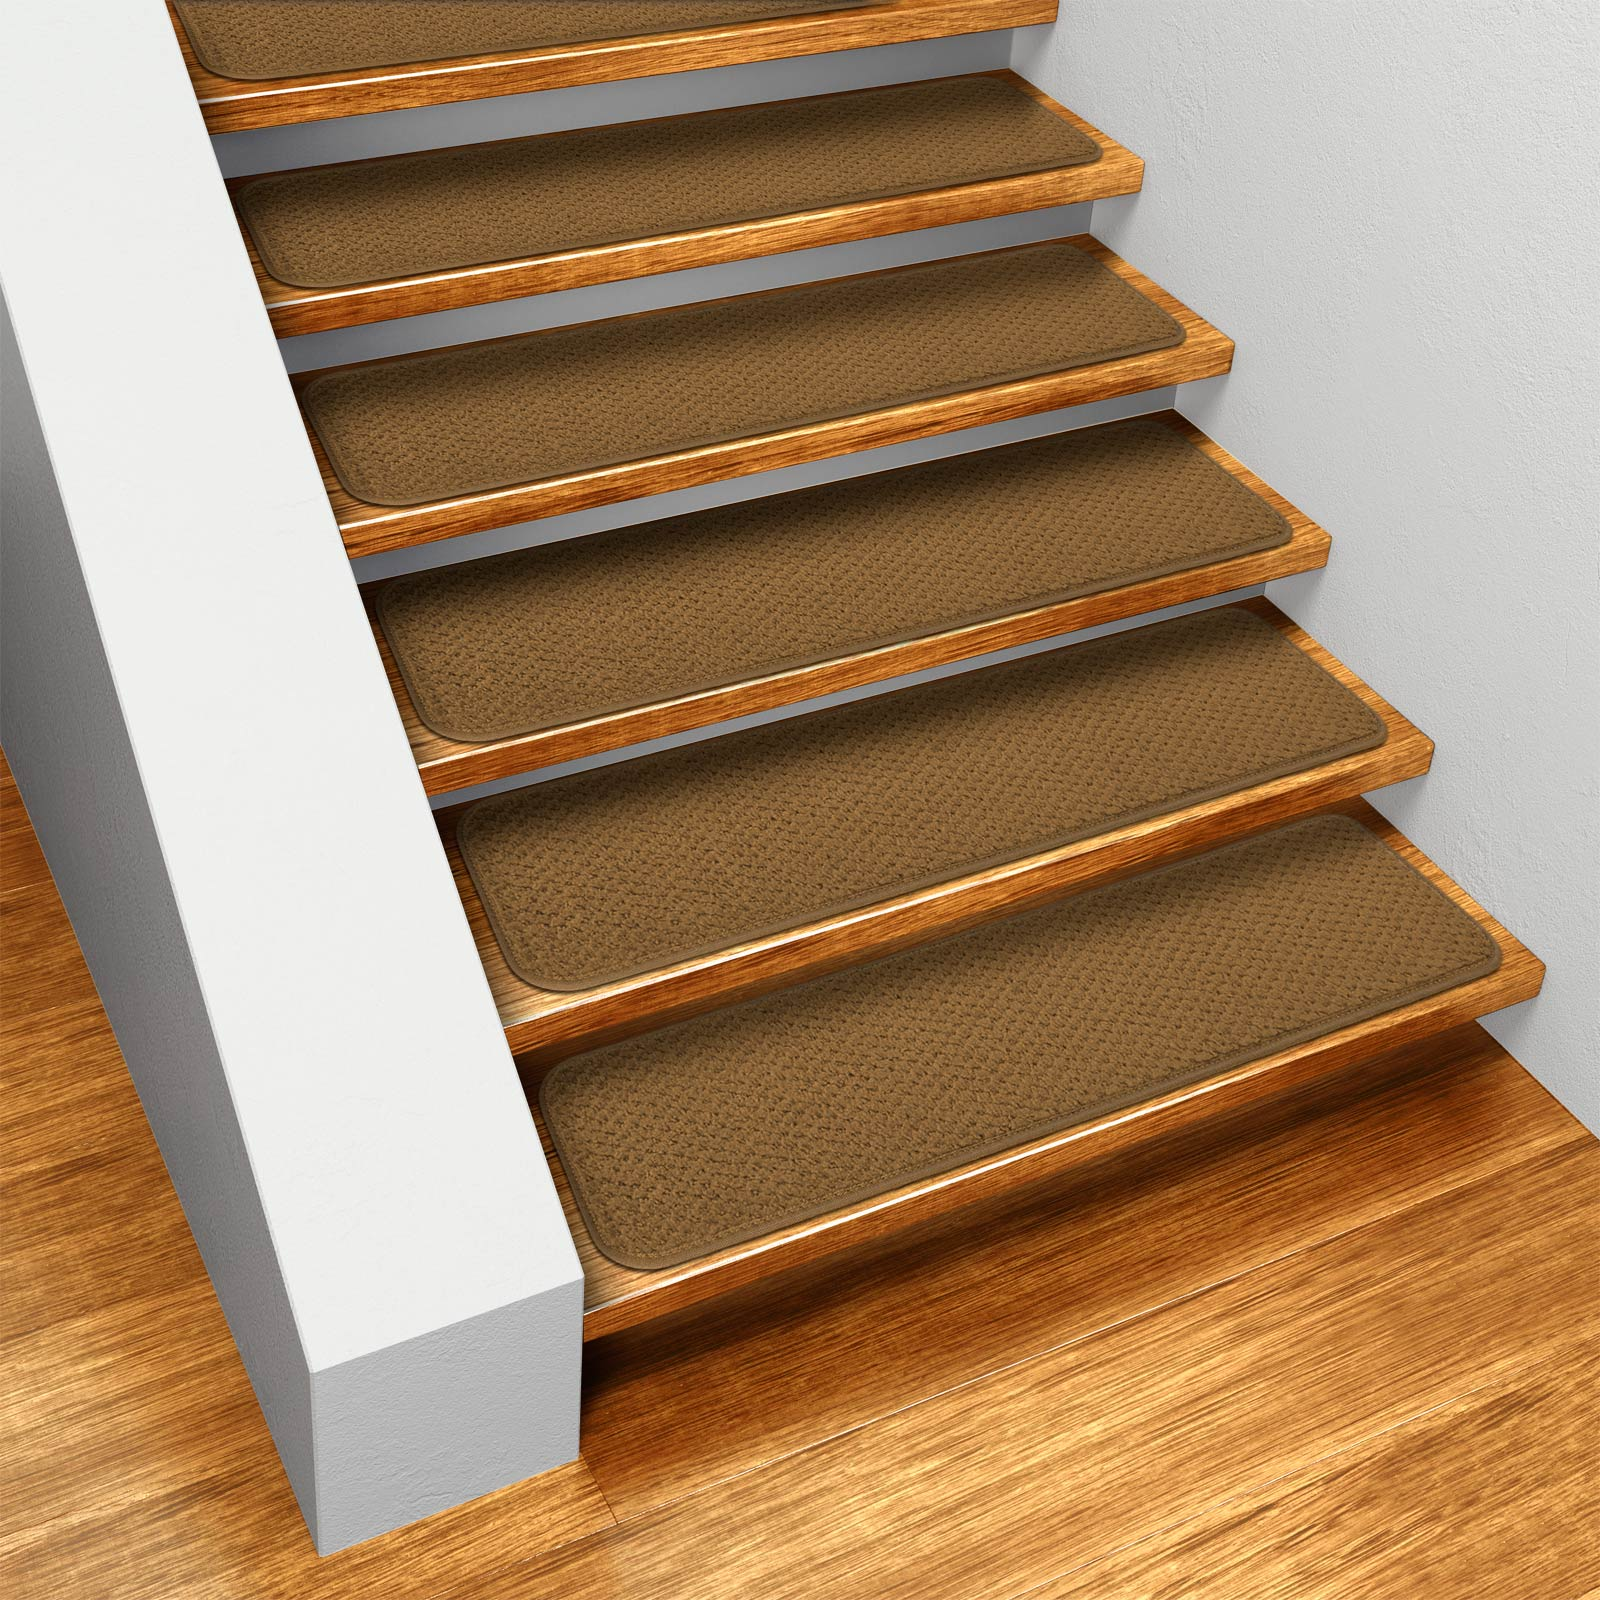 House, Home and More Set of 12 Skid-resistant Carpet Stair Treads - Bronze Gold - 8 In. X 23.5 In. at Sears.com